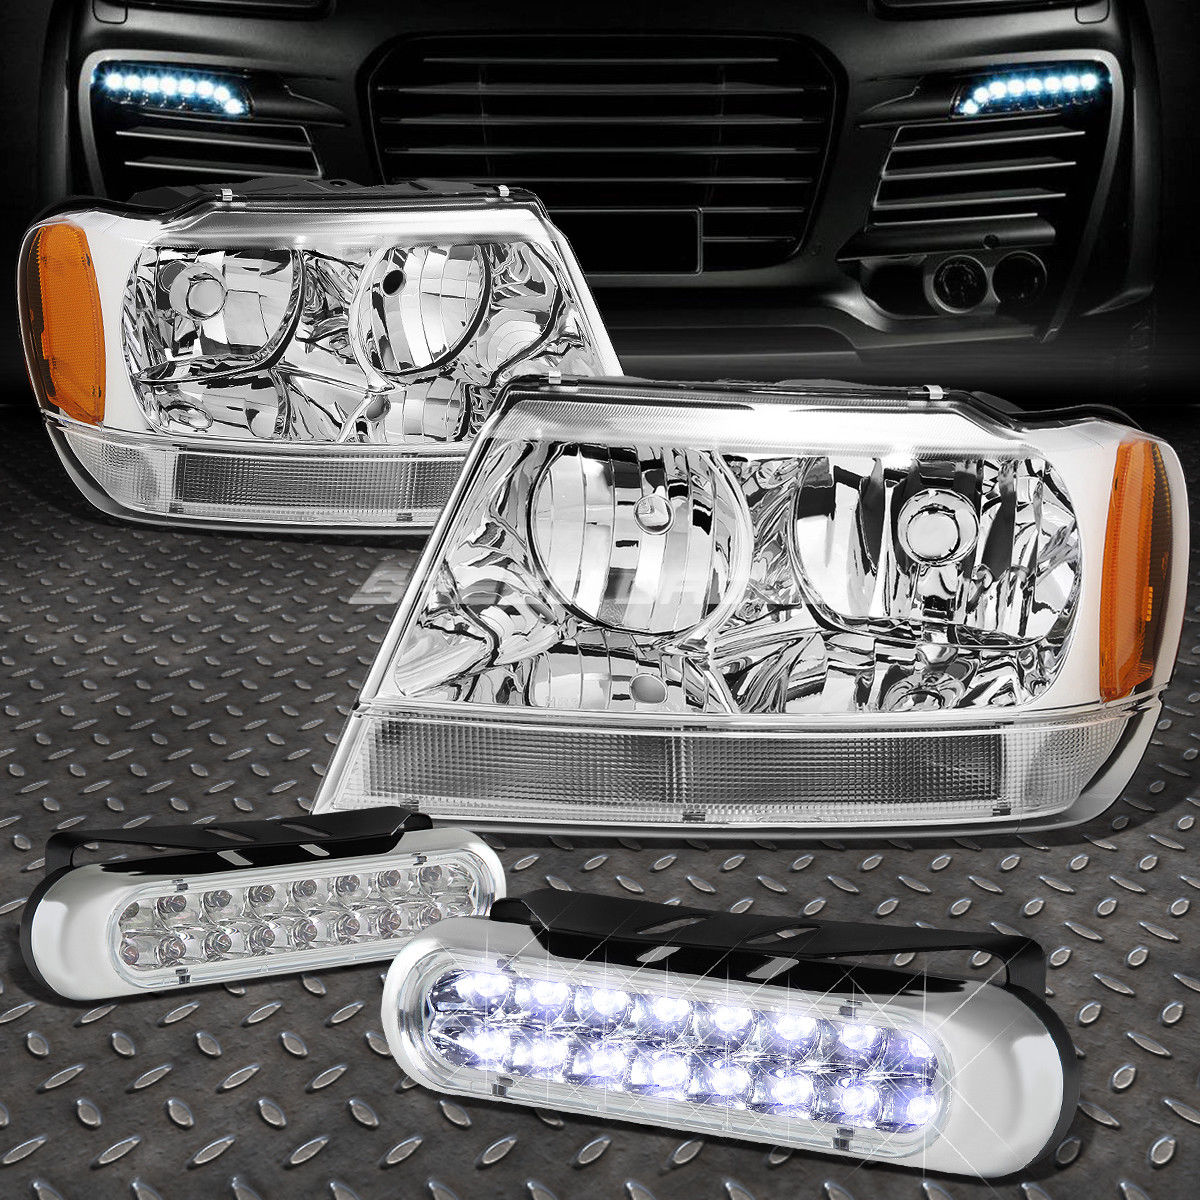 USフォグライト CHROME HEADLIGHT AMBER CORNER+16 LED GRILL FOG LIGHT FOR 99-04 GRAND CHEROKEE CHROME HEADLIGHT AMBER CORNER + 99-04 GRAND CHEROKEE用LEDグリルフォグライト16